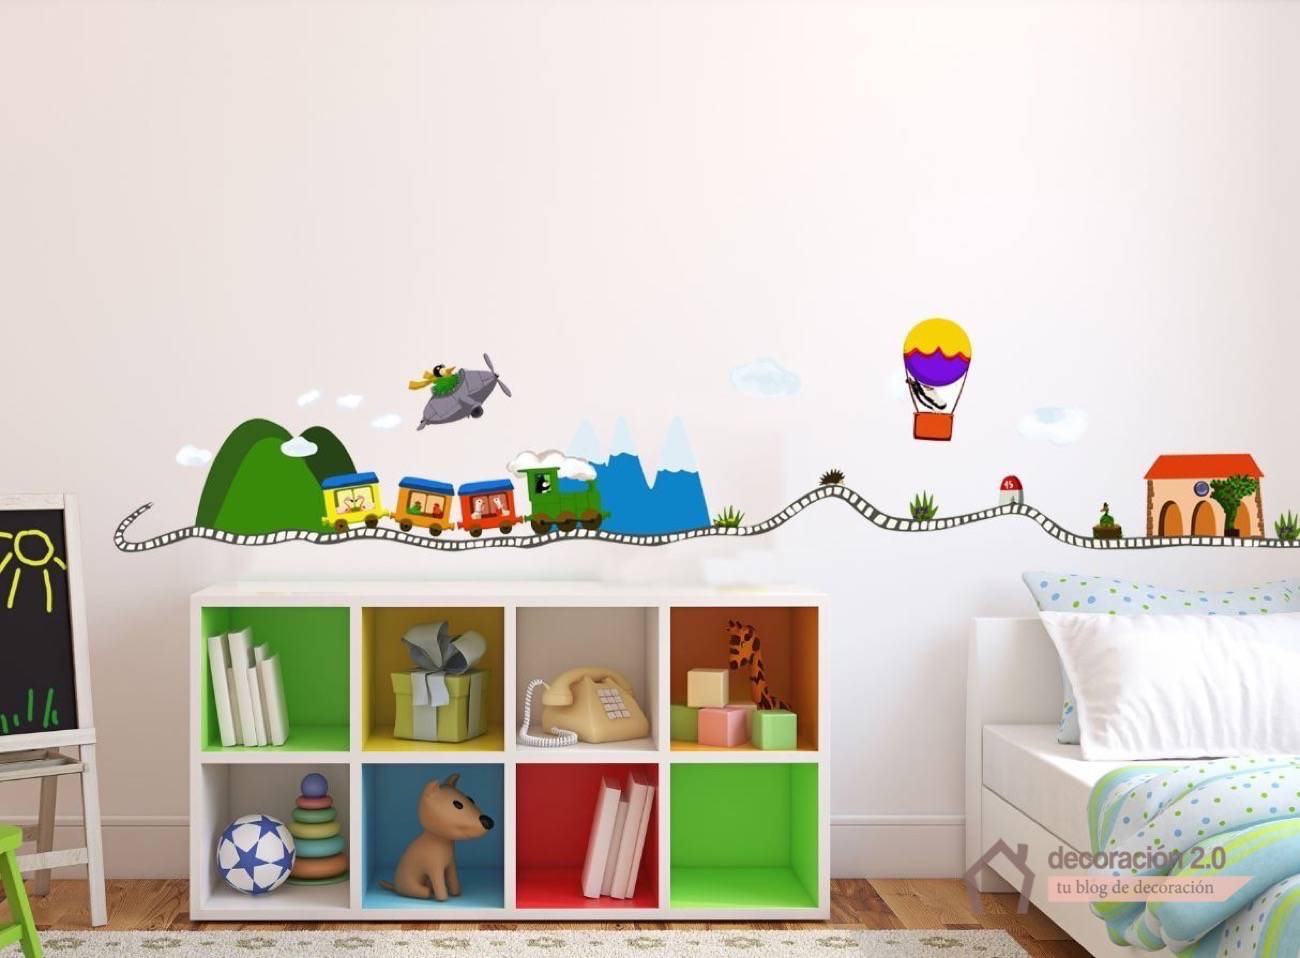 5 ideas diy para decorar nuestras habitaciones infantiles for Ideas para decoracion habitaciones infantiles